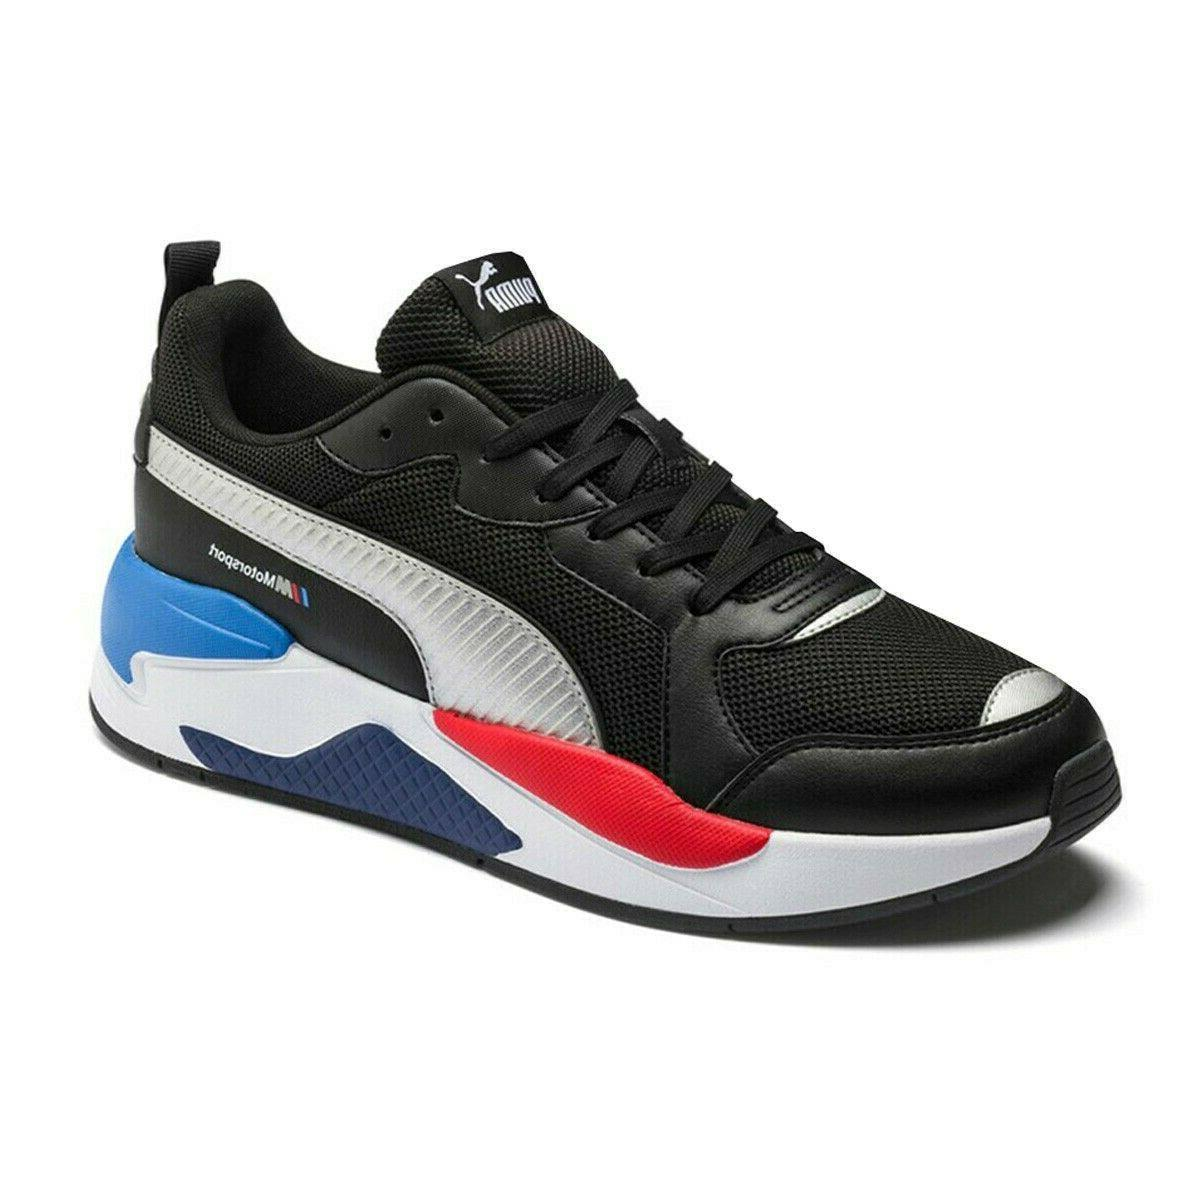 Chaussures Baskets Puma homme BMW MMS X-Ray Taille